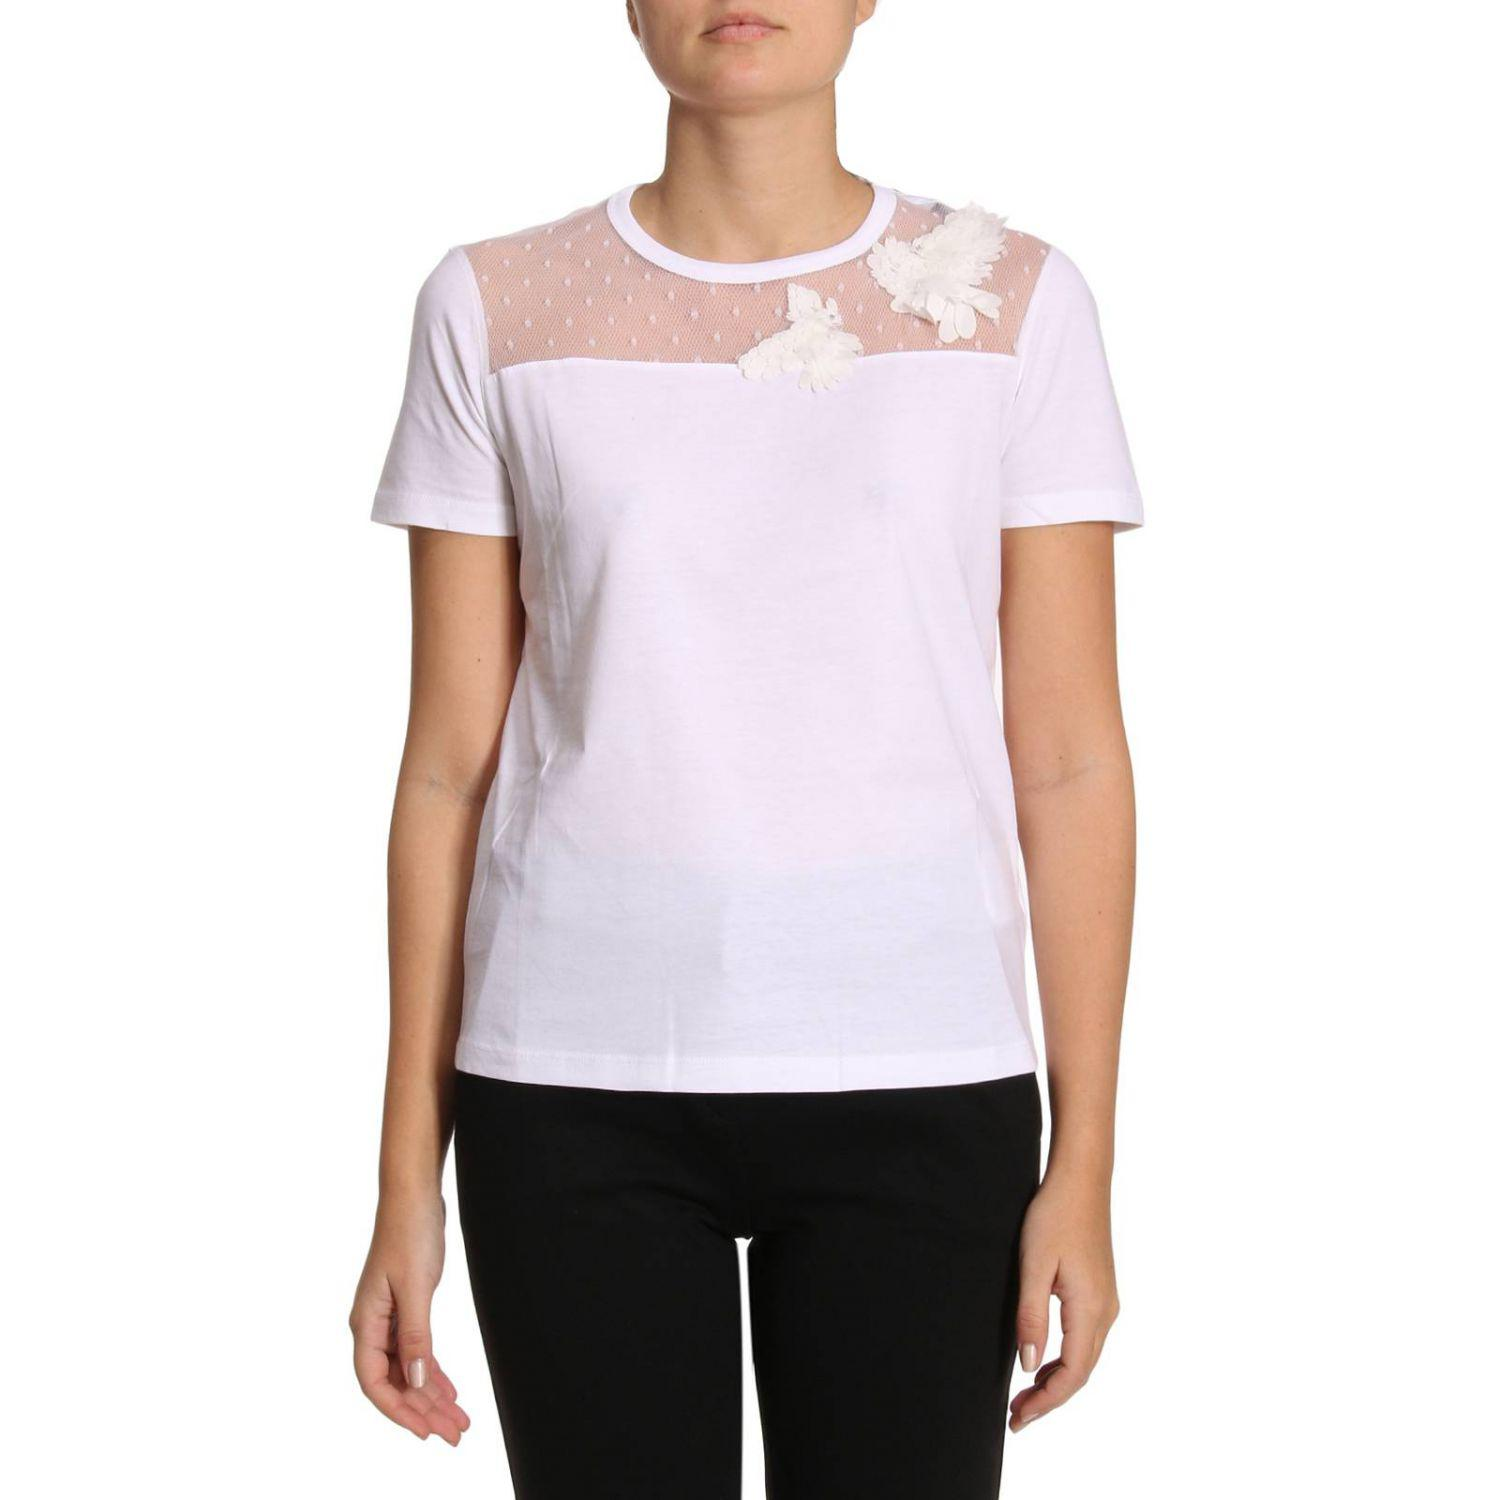 Lyst red valentino t shirt women in white for Red valentino t shirt